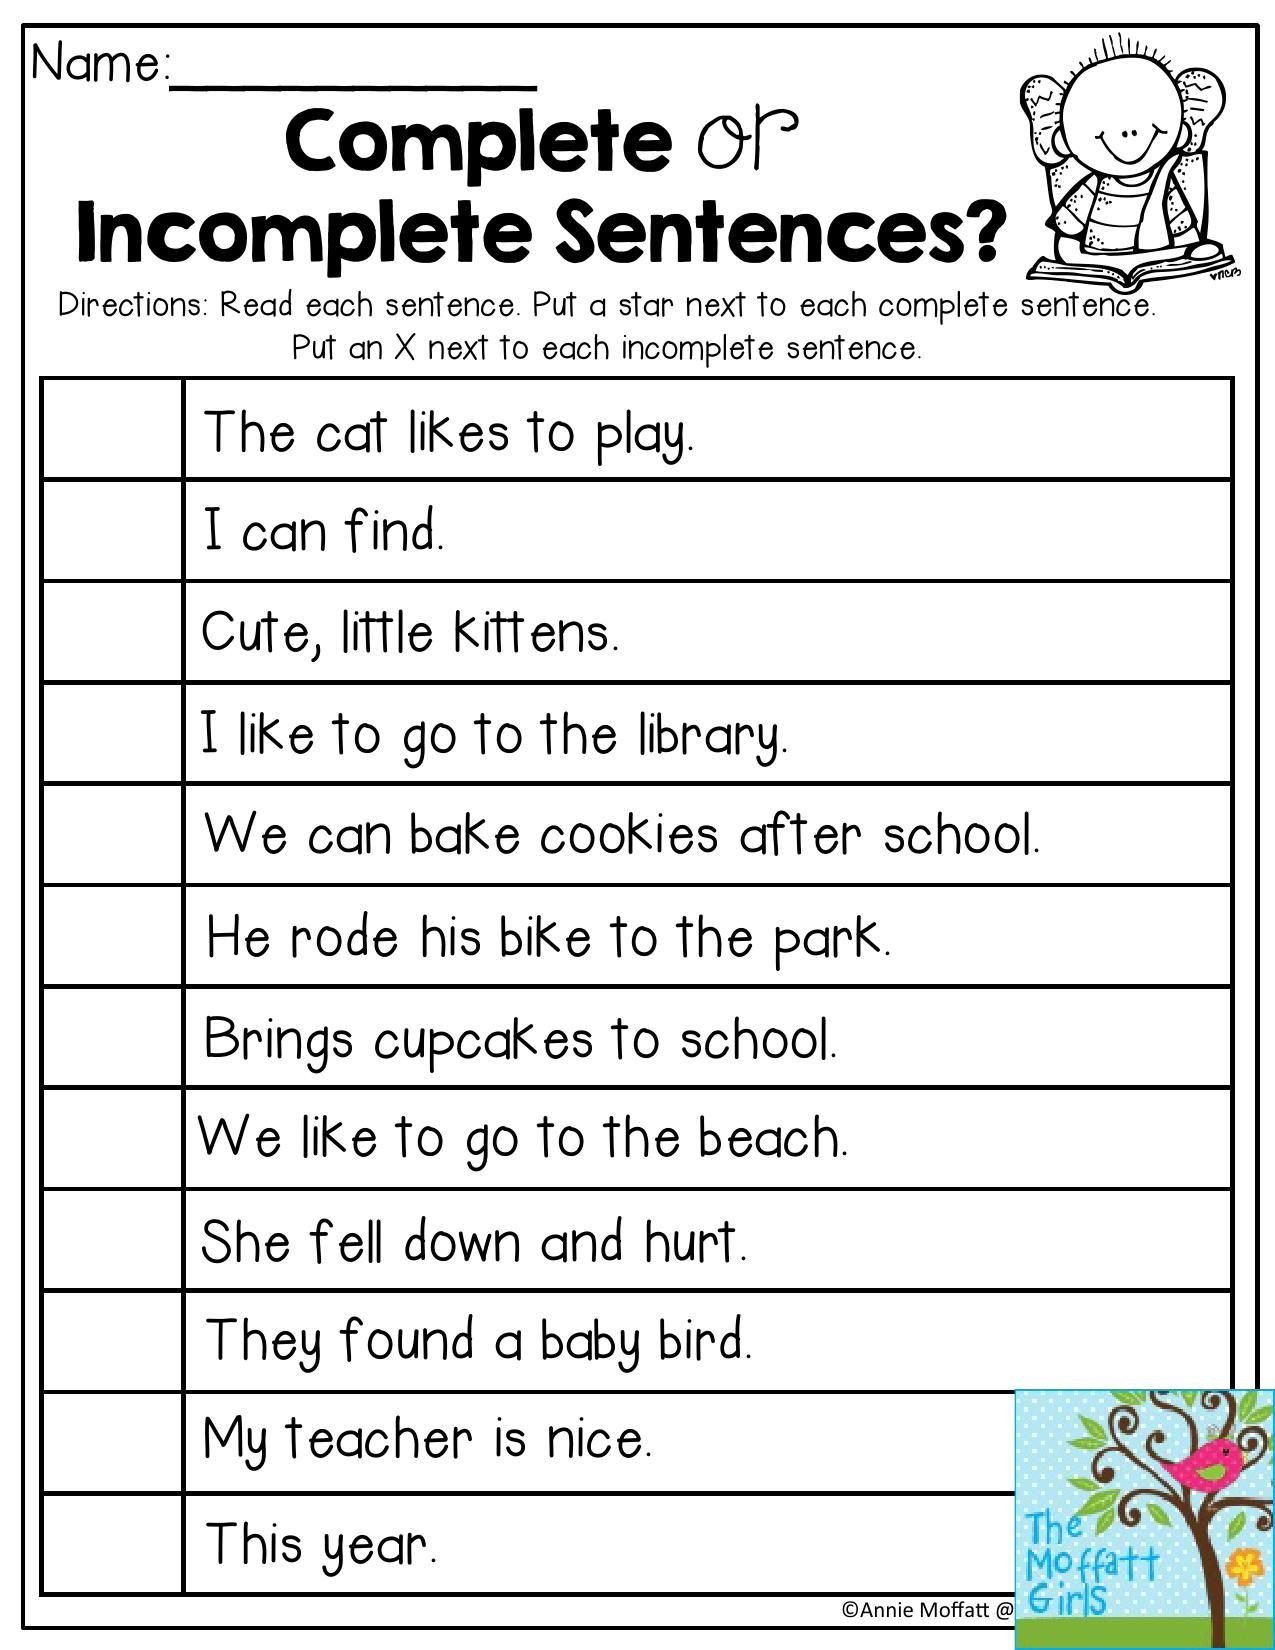 Complete Sentences Worksheets 1st Grade Back to School Packets